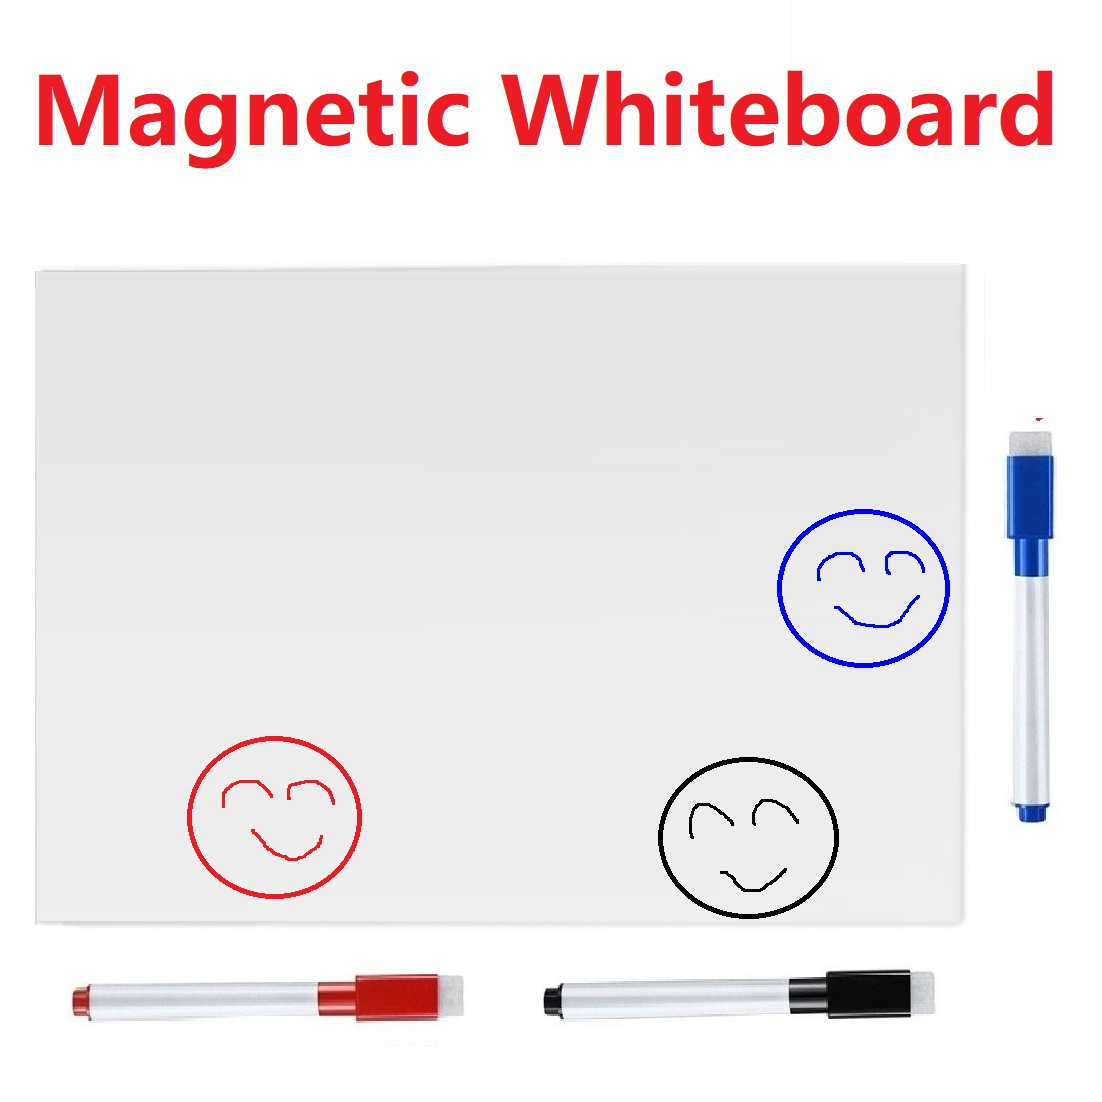 Dry-erase Magnetic Whiteboard For Fridge Sticker Refrigerator Magnets White Board Markers Eraser Home Office Magnet Board Decor